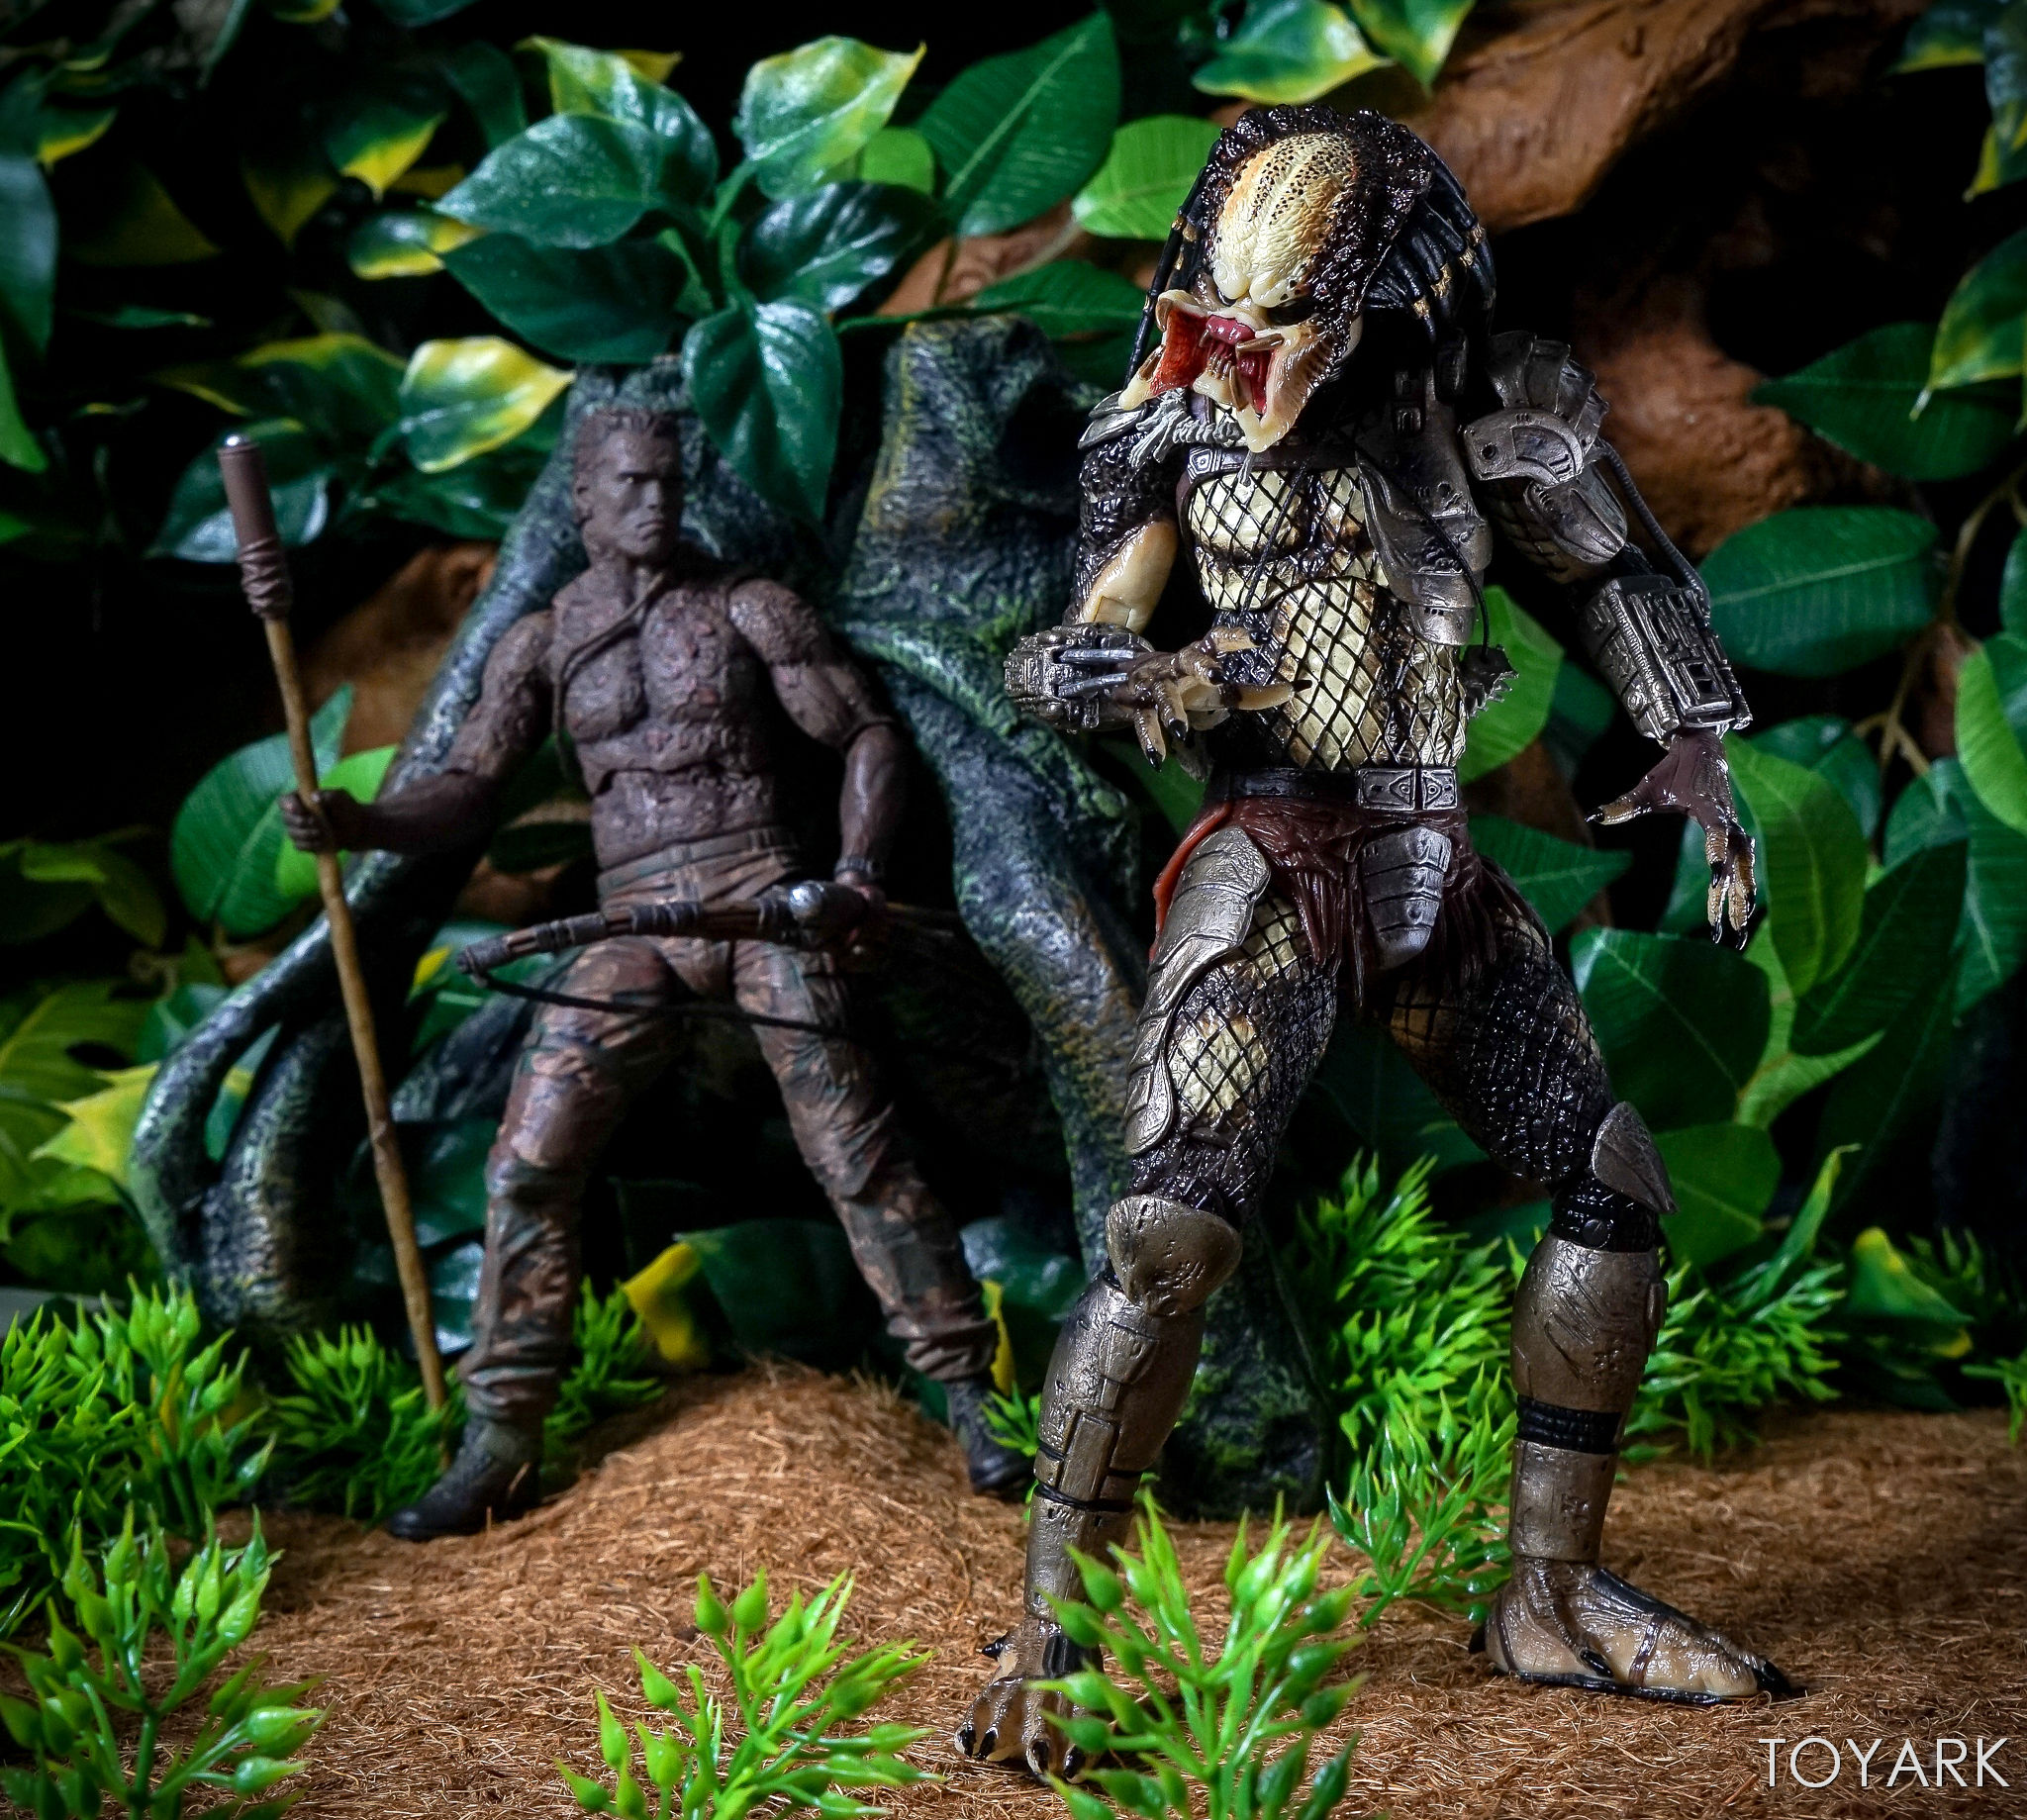 http://news.toyark.com/wp-content/uploads/sites/4/2017/06/Predator-30th-Anniversary-Set-154.jpg